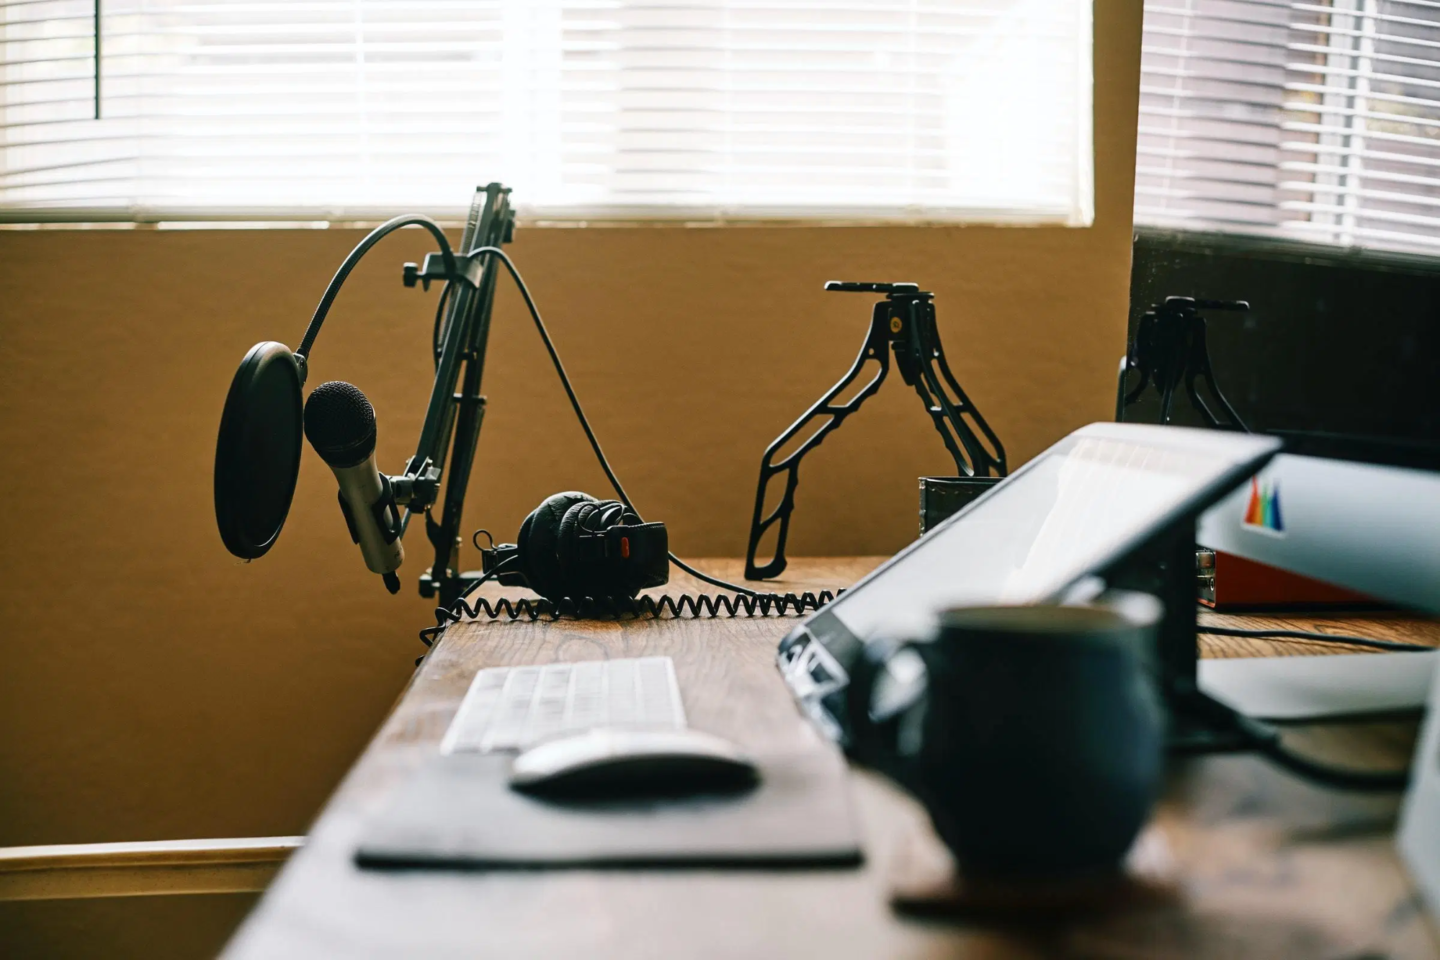 Microphones and other equipment on desk to record podcast remotely